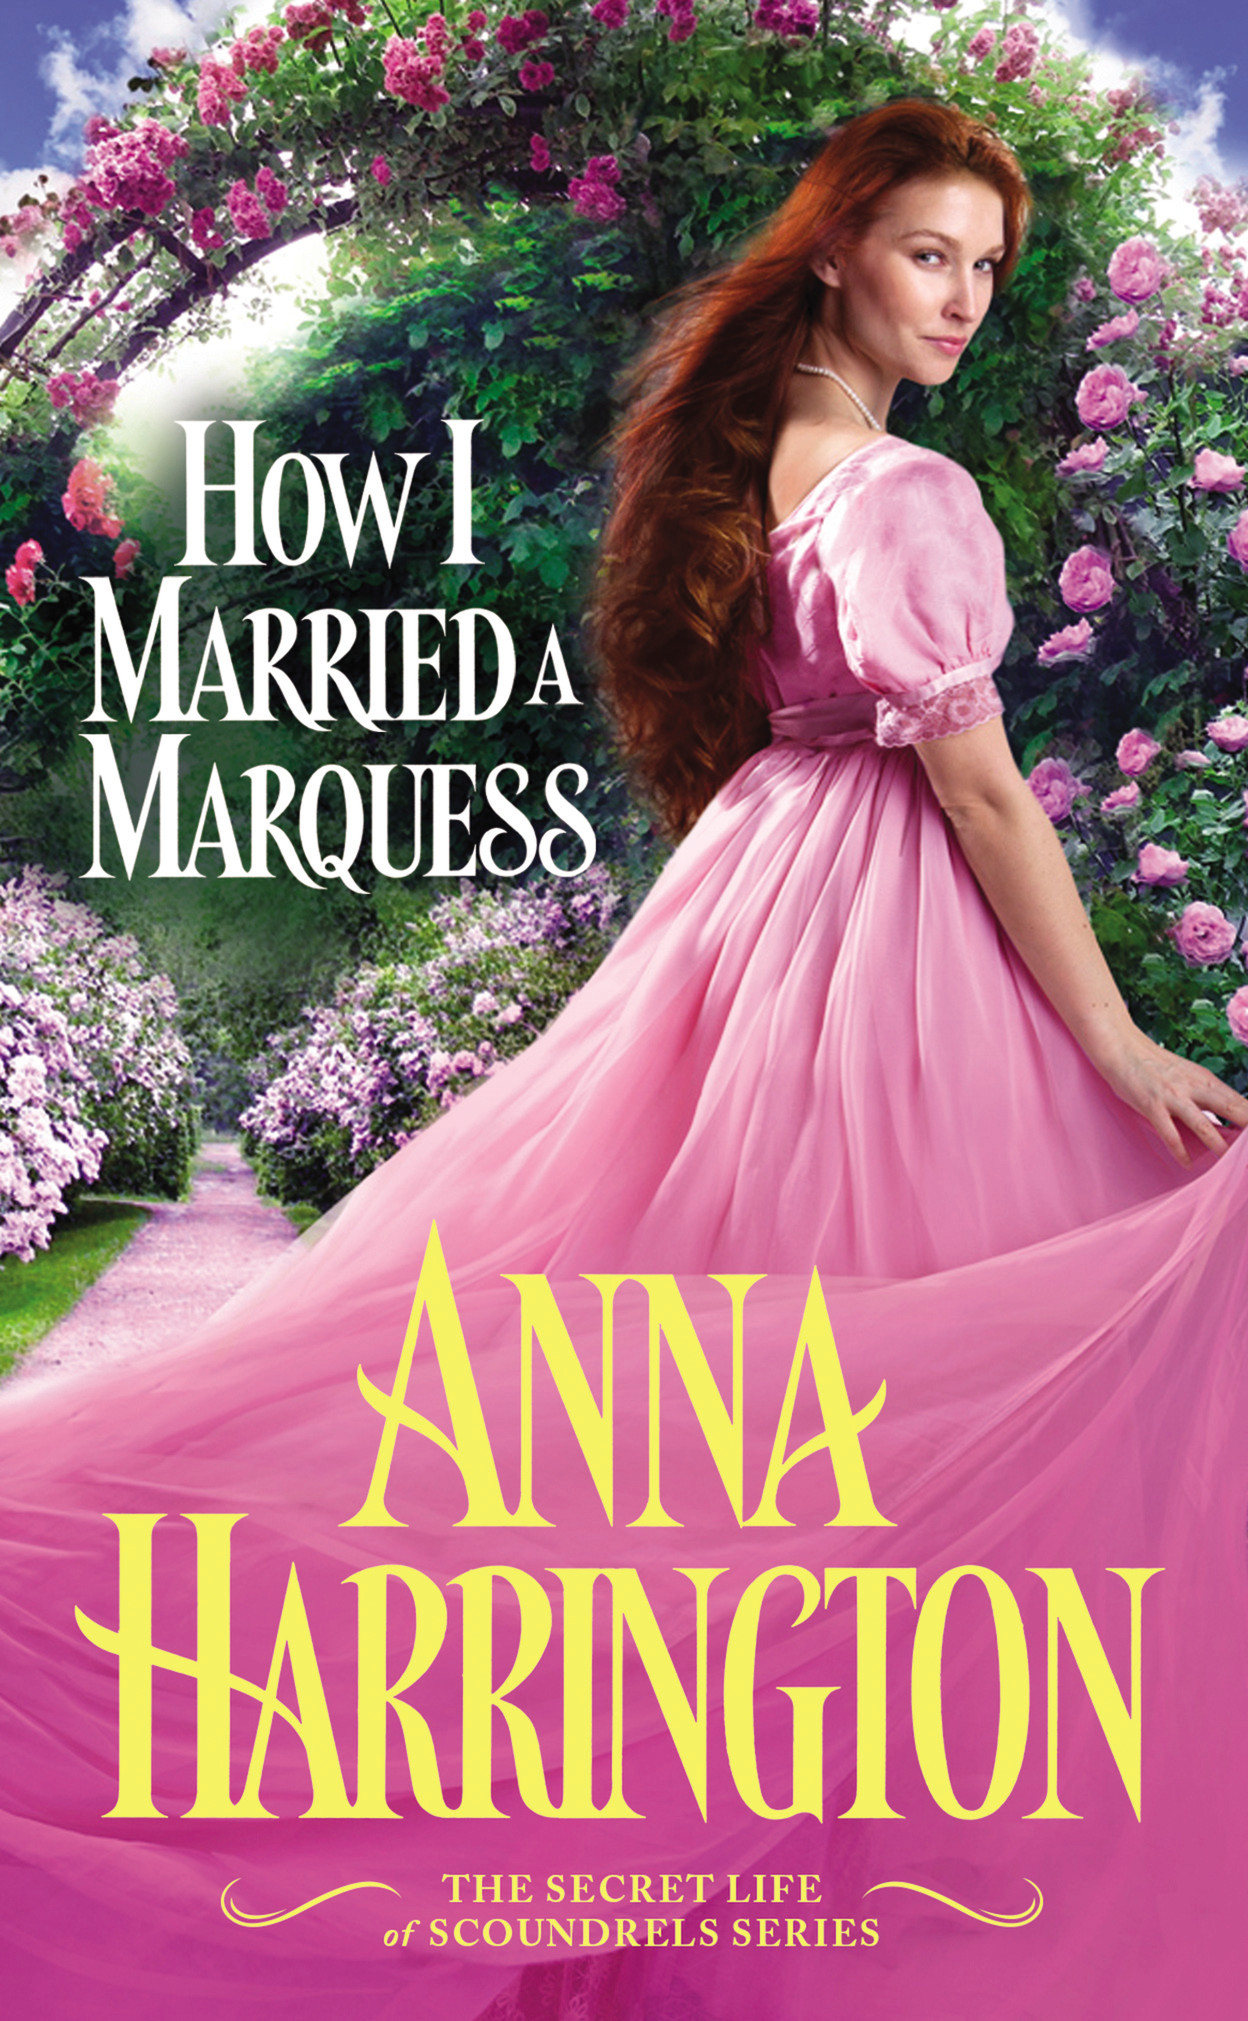 BOOK REVIEW: 'How I Married A Marquess' by Anna Harrington – 3.5 STARS